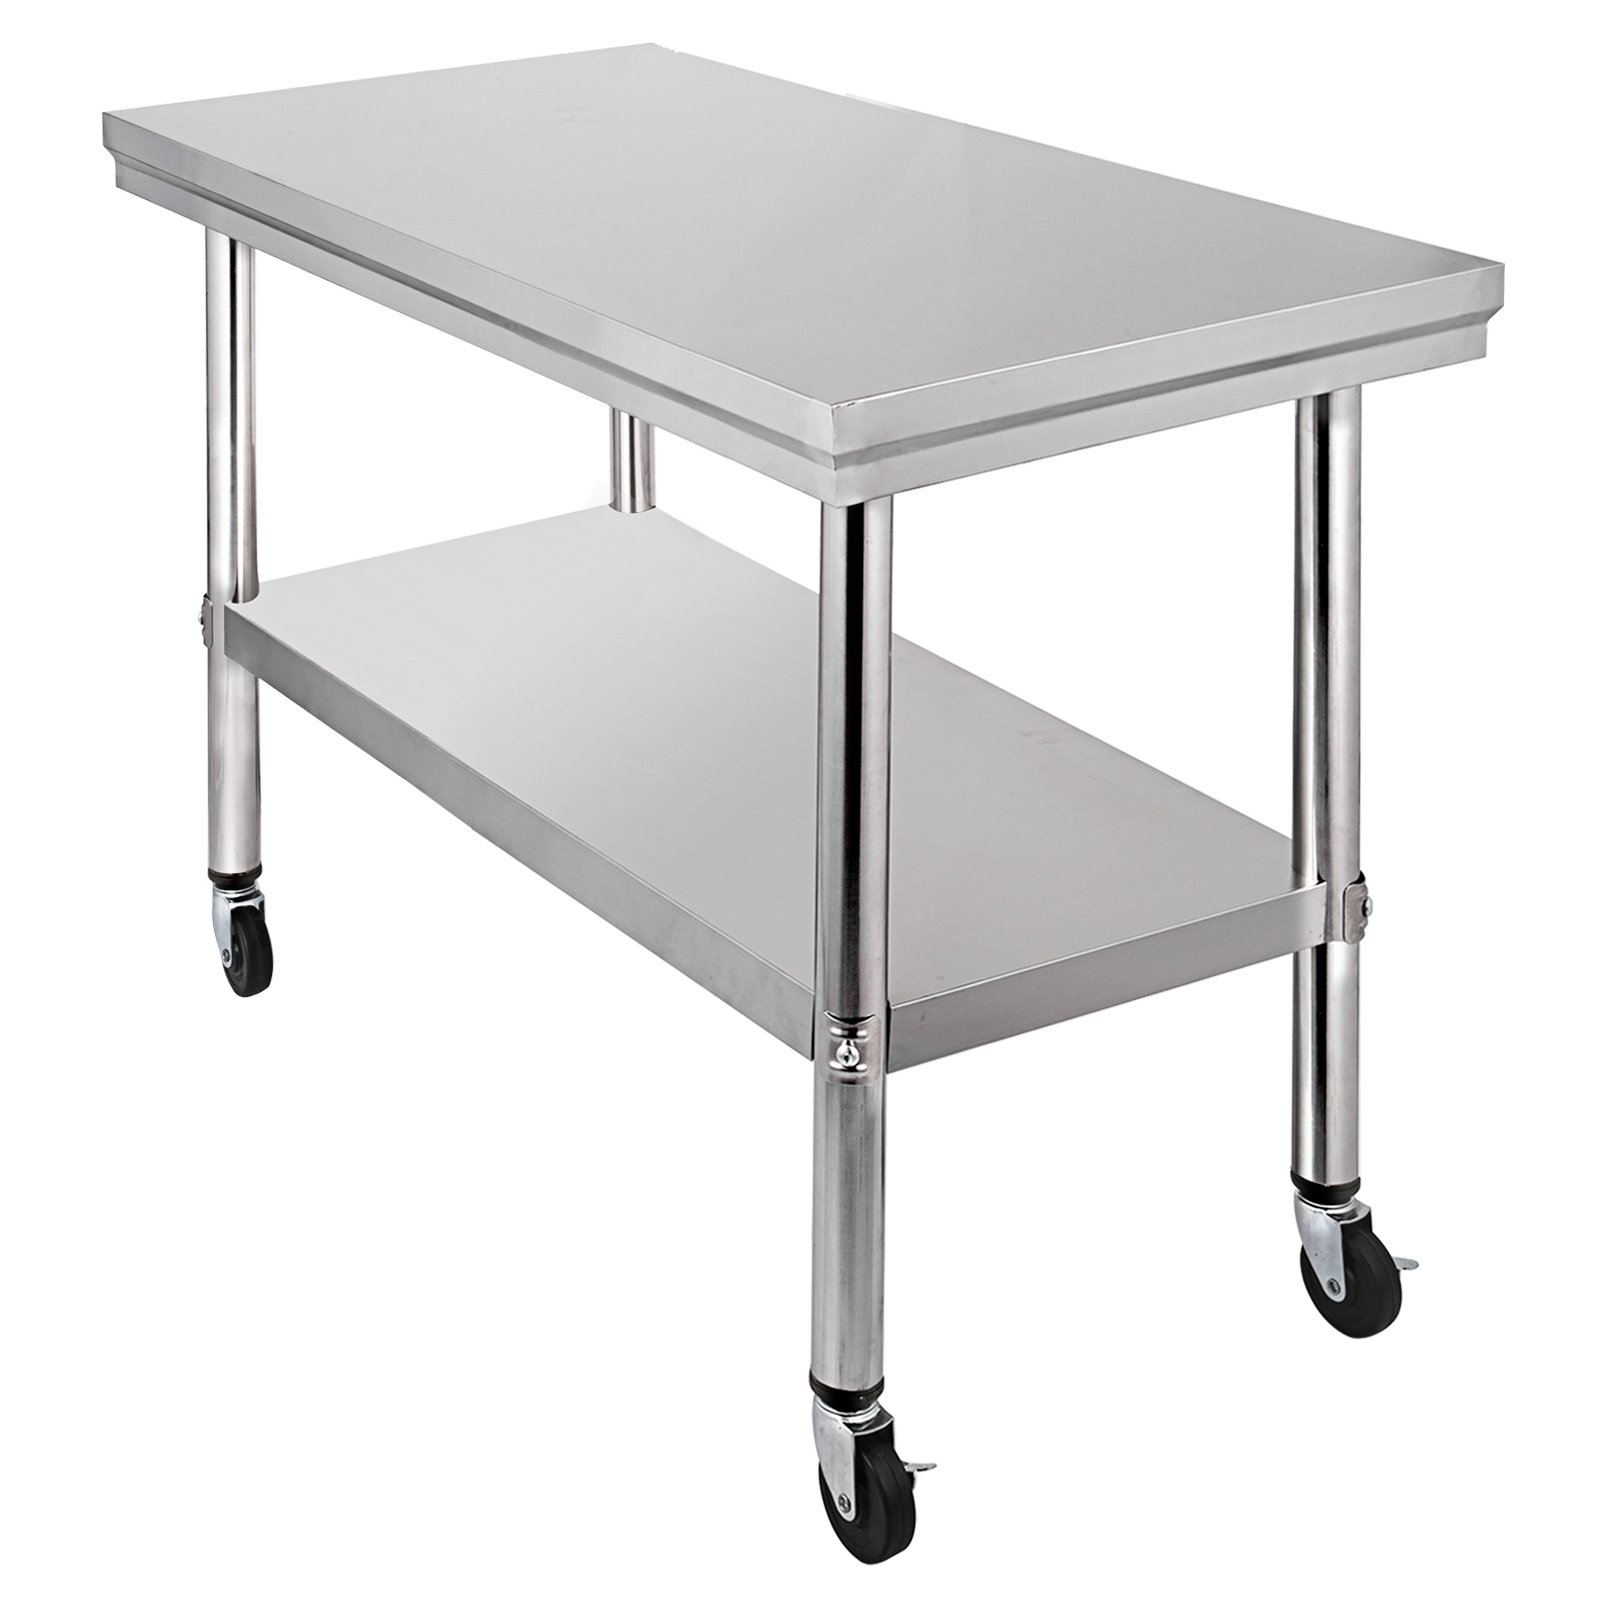 Mophorn NSF Stainless Steel Work Table with Wheels 30x24 Prep Table with casters Heavy Duty Work Table for Commercial Kitchen Restaurant Business Garage (30''x24'') by Mophorn